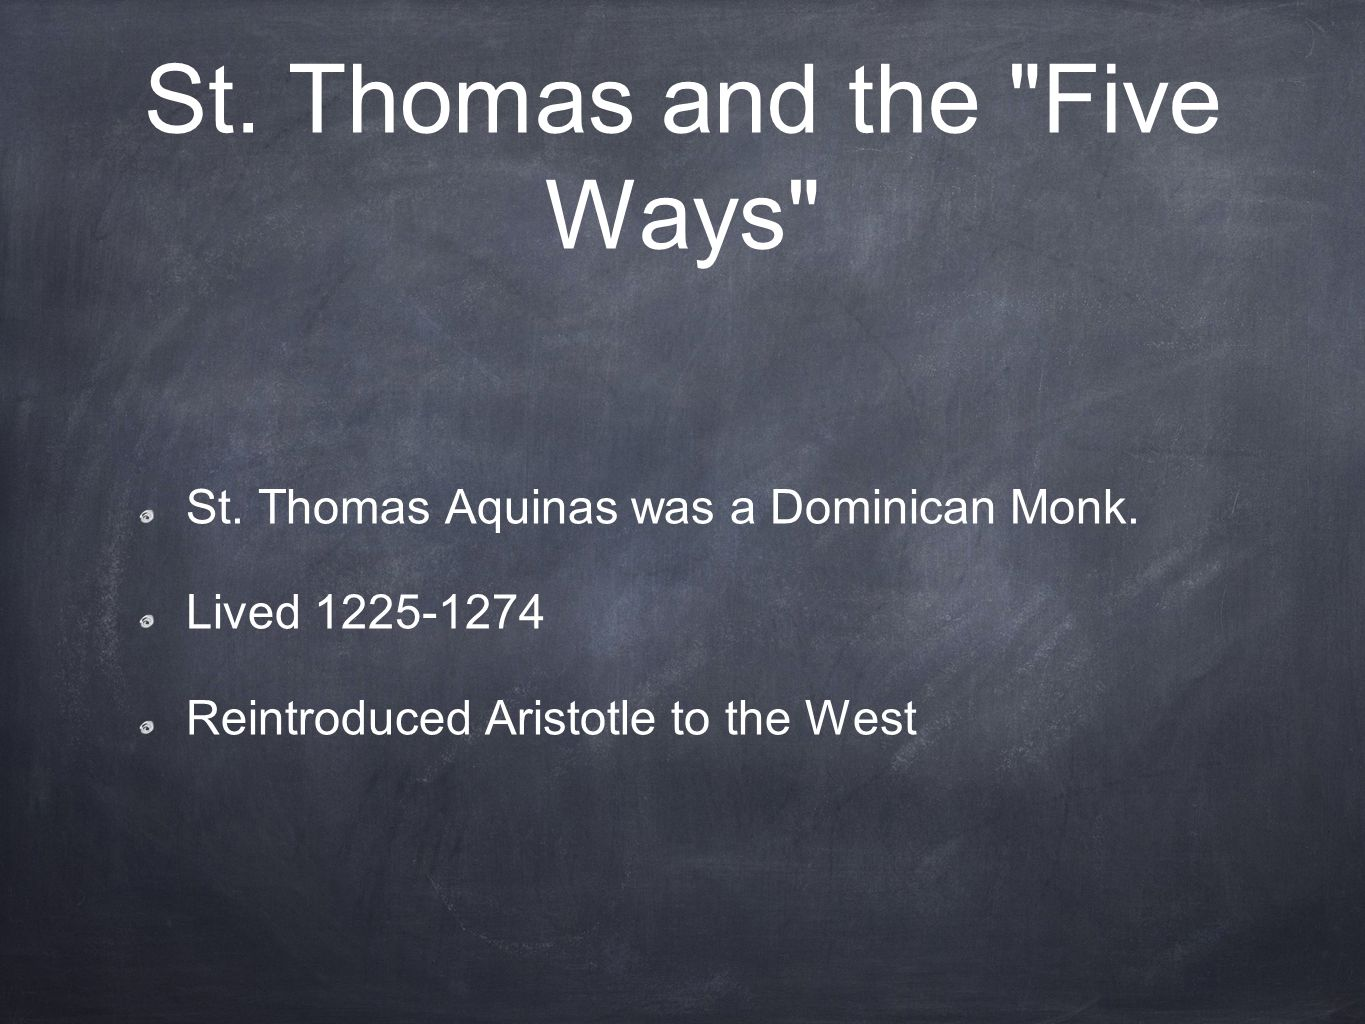 St. Thomas and the Five Ways